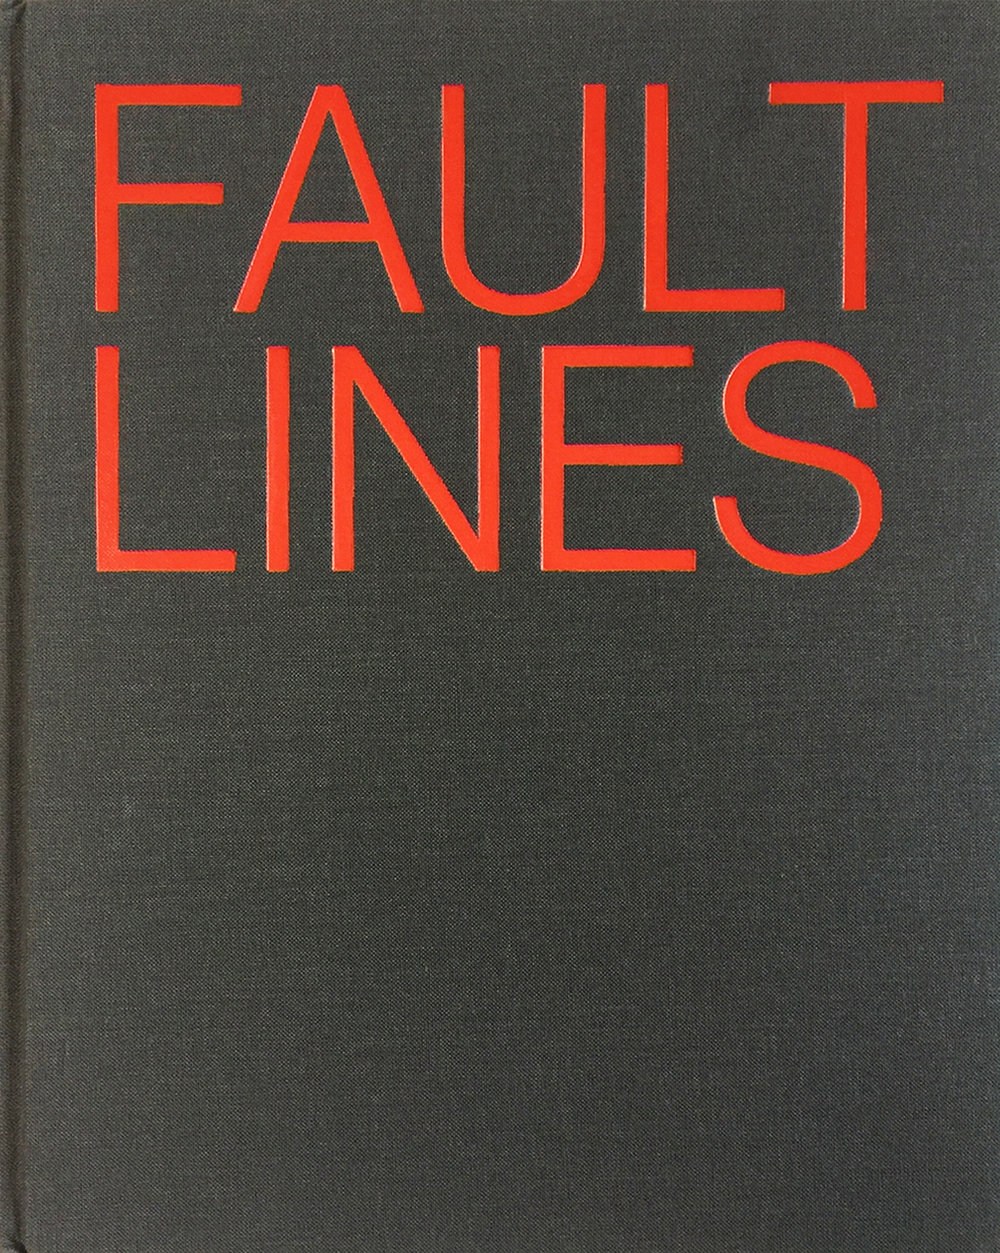 AT FAULTLINES_cover.jpg